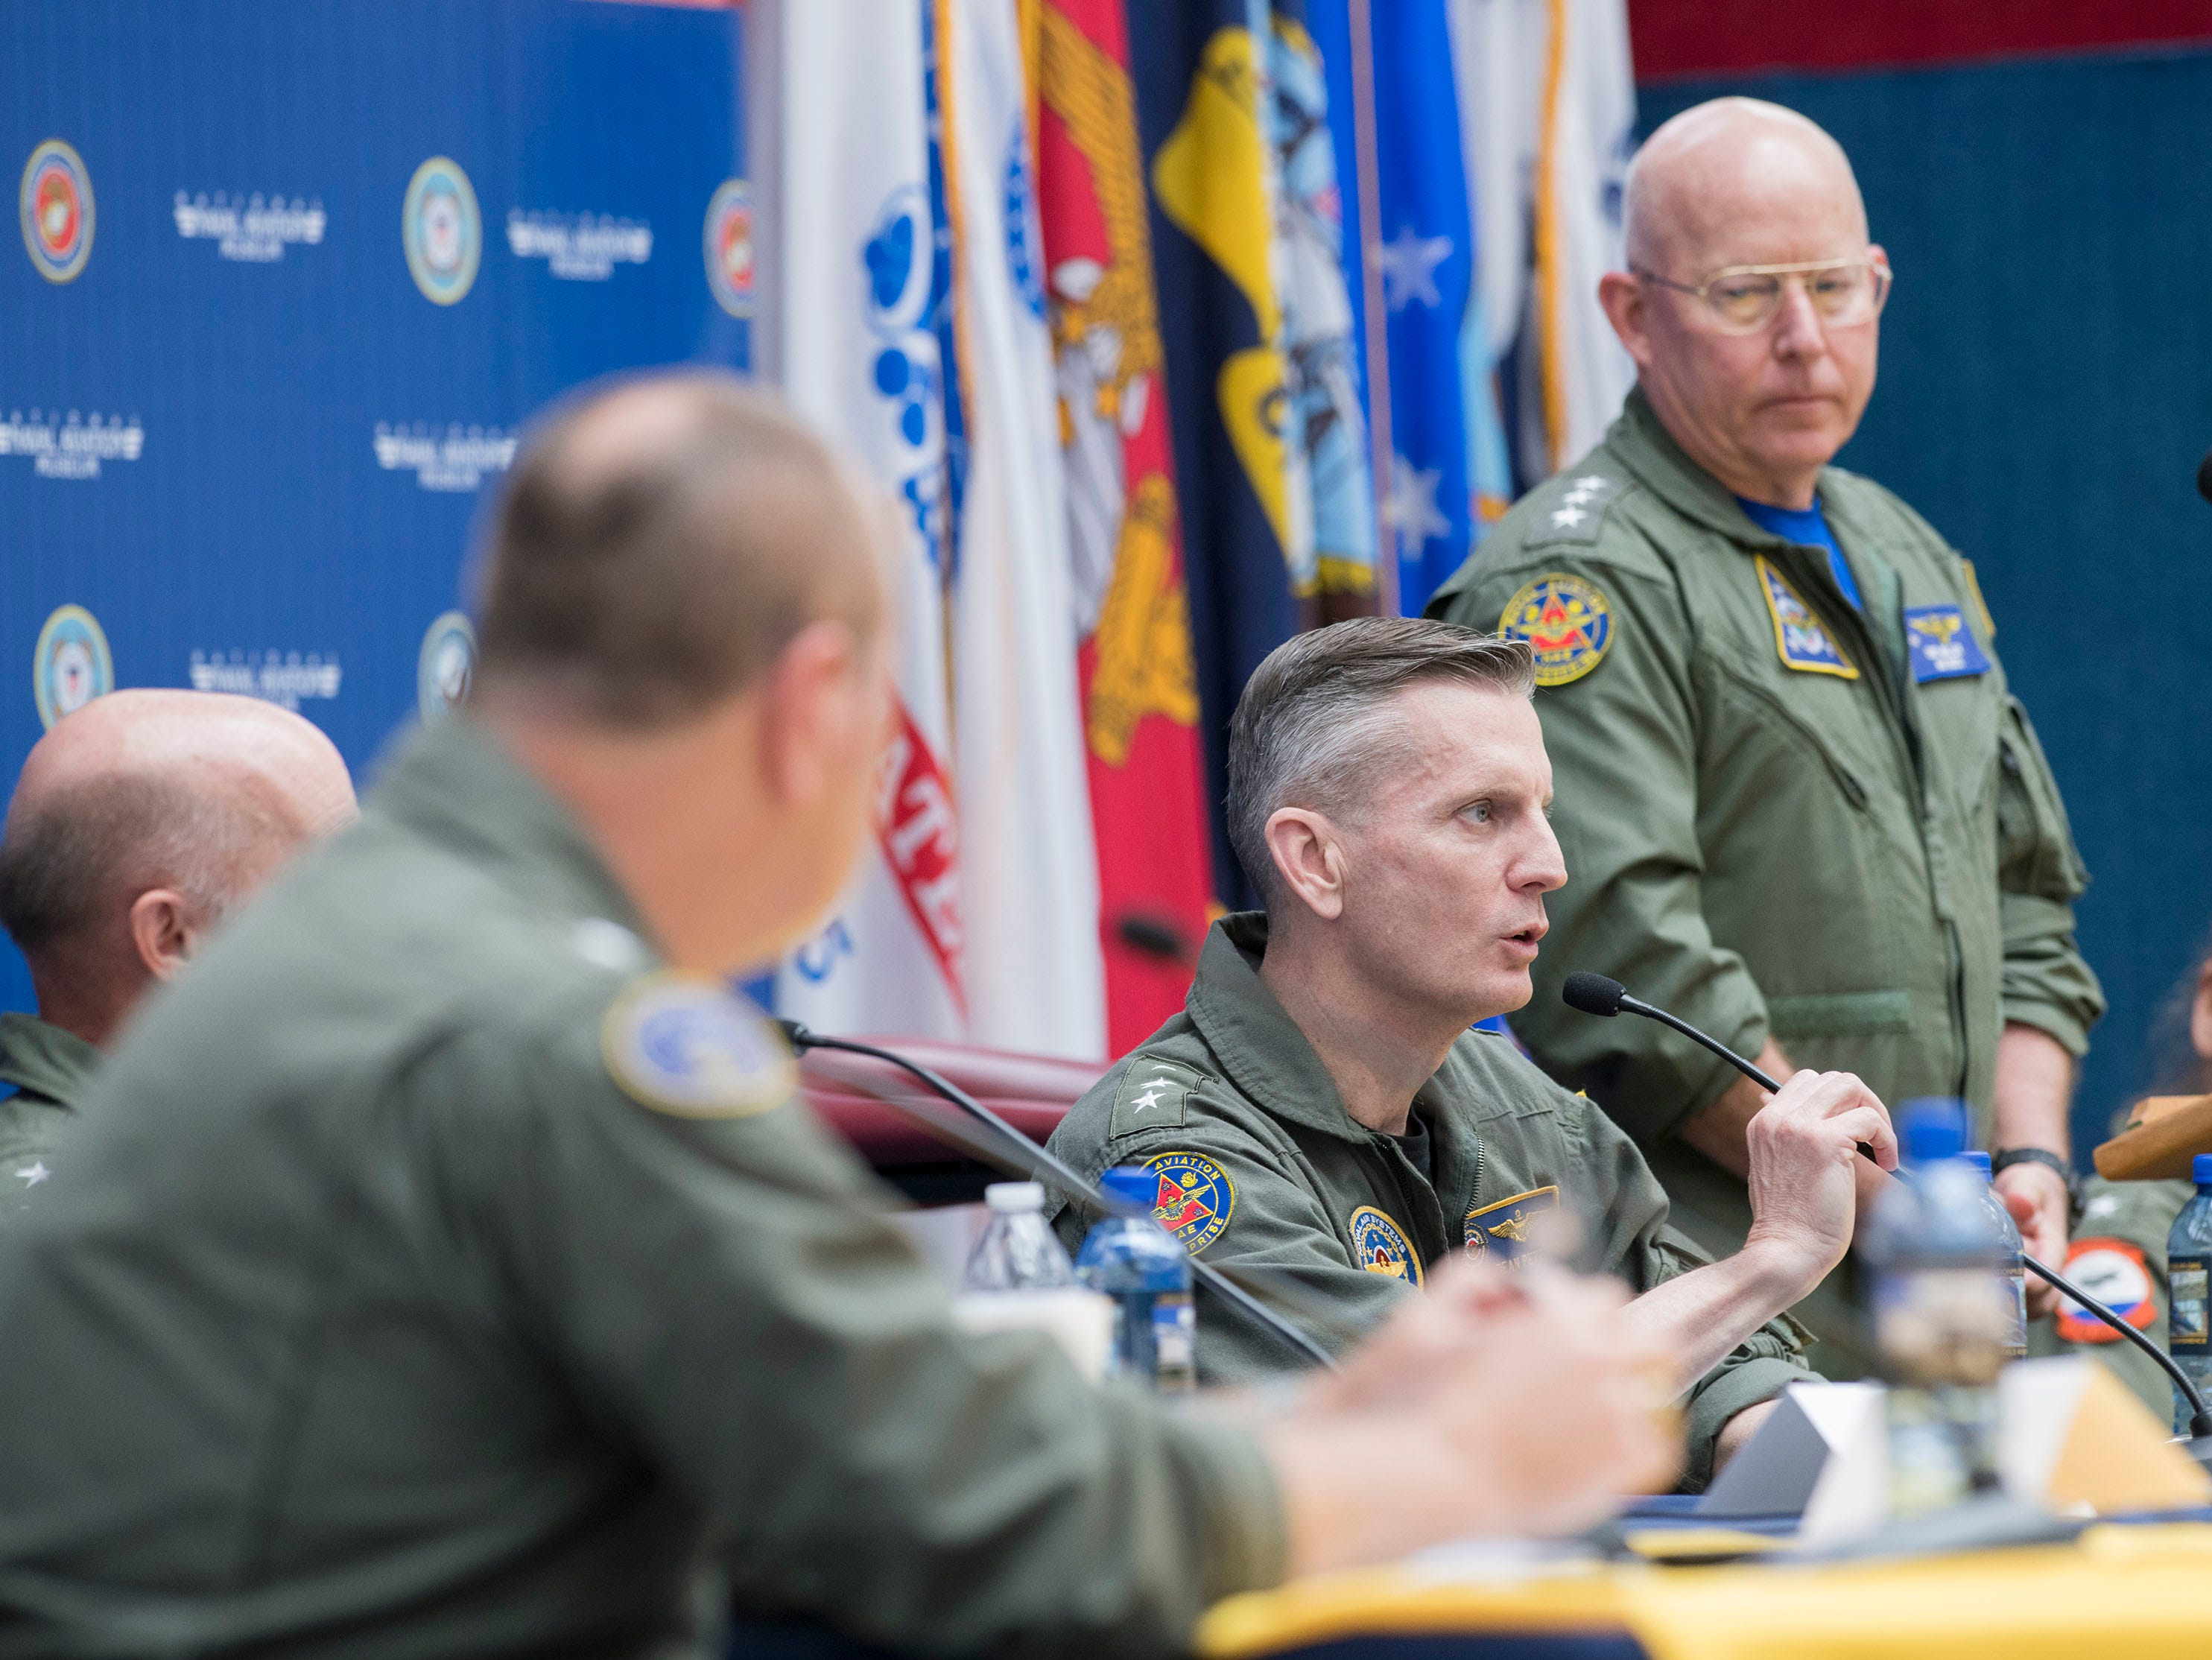 Vice  Adm. Daniel Peters offers his thoughts to young aviators during a discussion panel on Naval Aviation Today and Tomorrow during the 2019 Naval Aviation Symposium at the National Naval Aviation Museum on Friday, May 10, 2019.